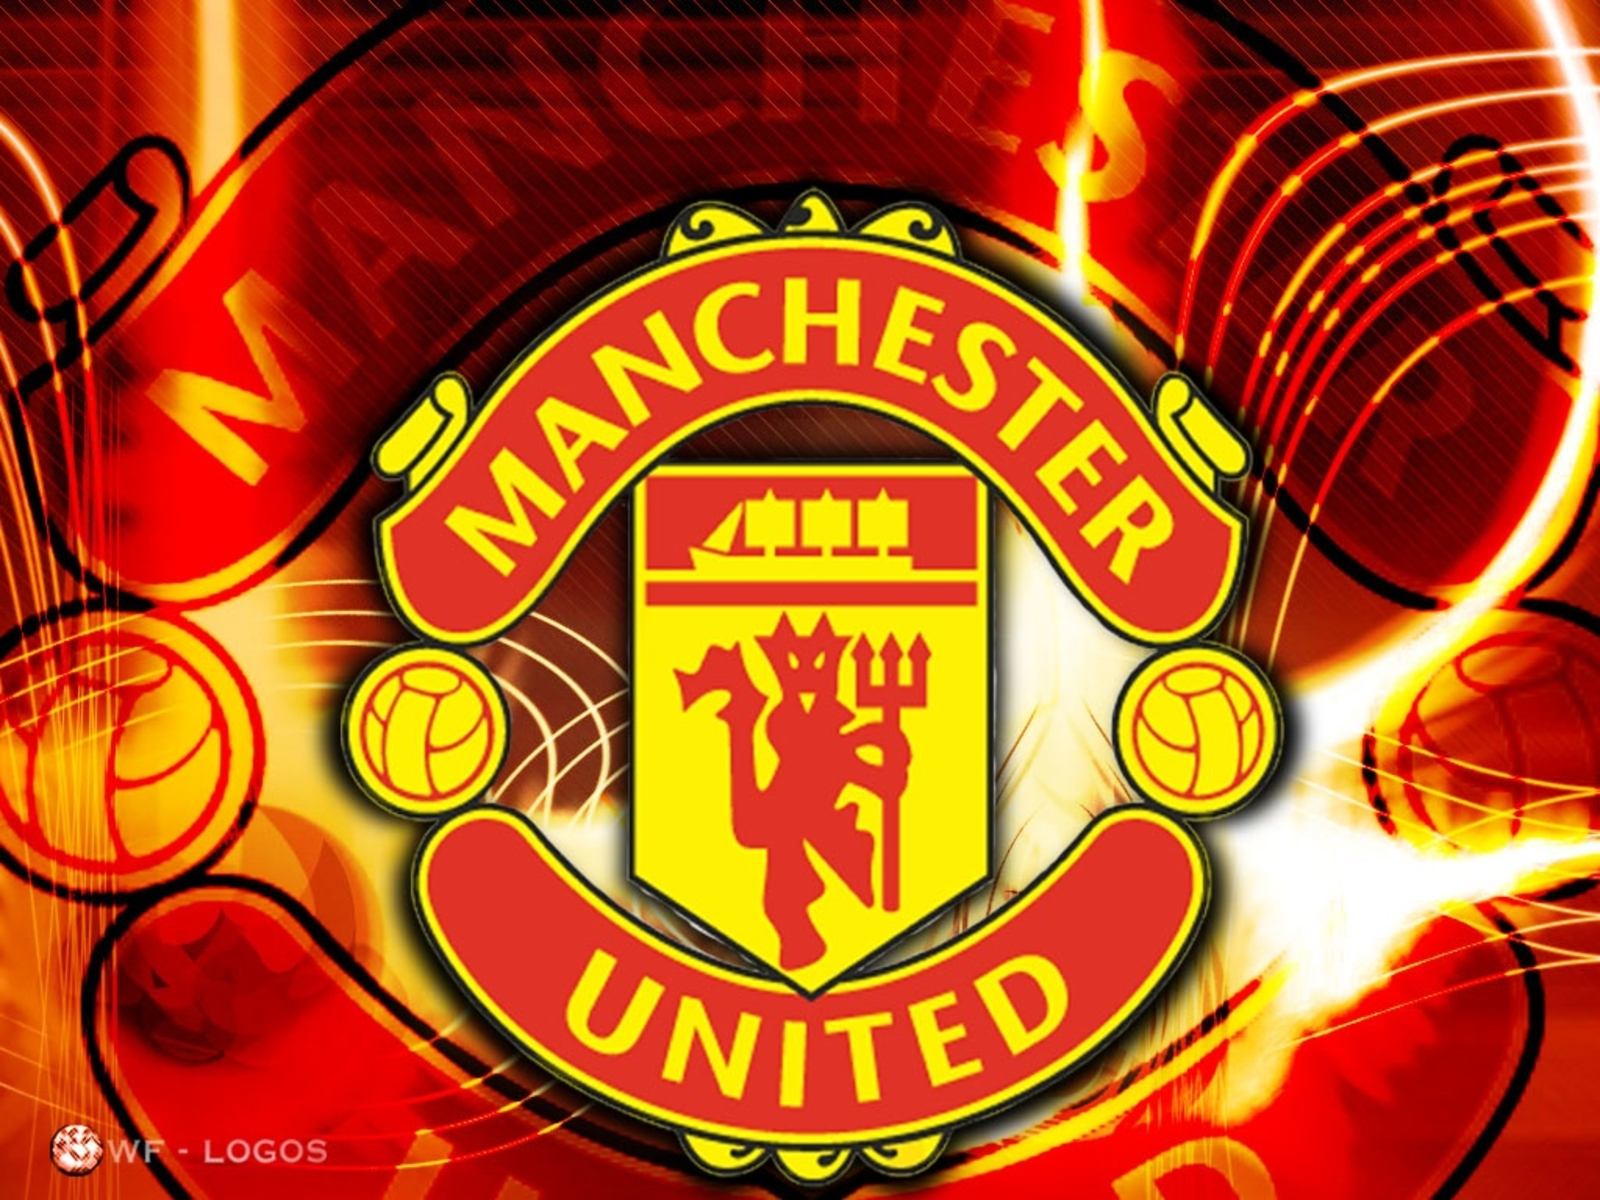 Manchester united logo hd wallpapers 2013 2014 - Cool man united wallpapers ...